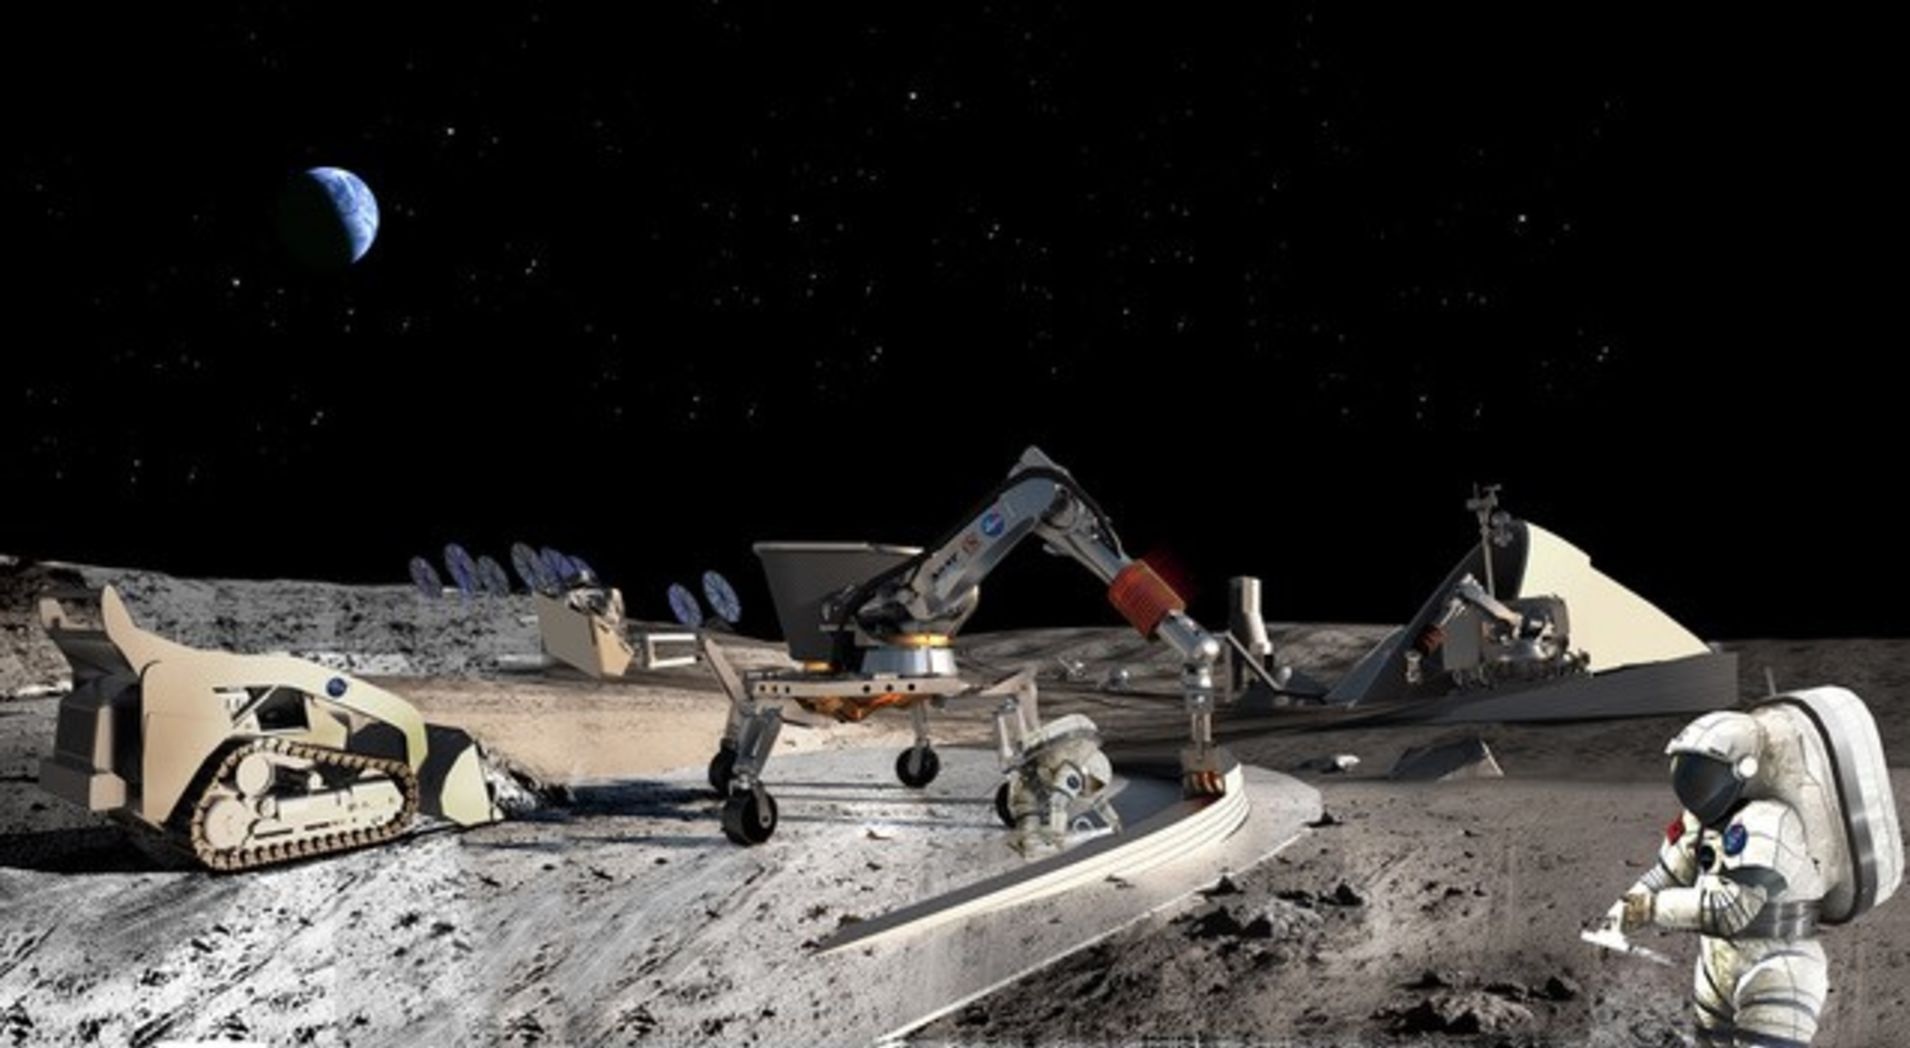 Construction Company Caterpillar Wants To Mine the Moon